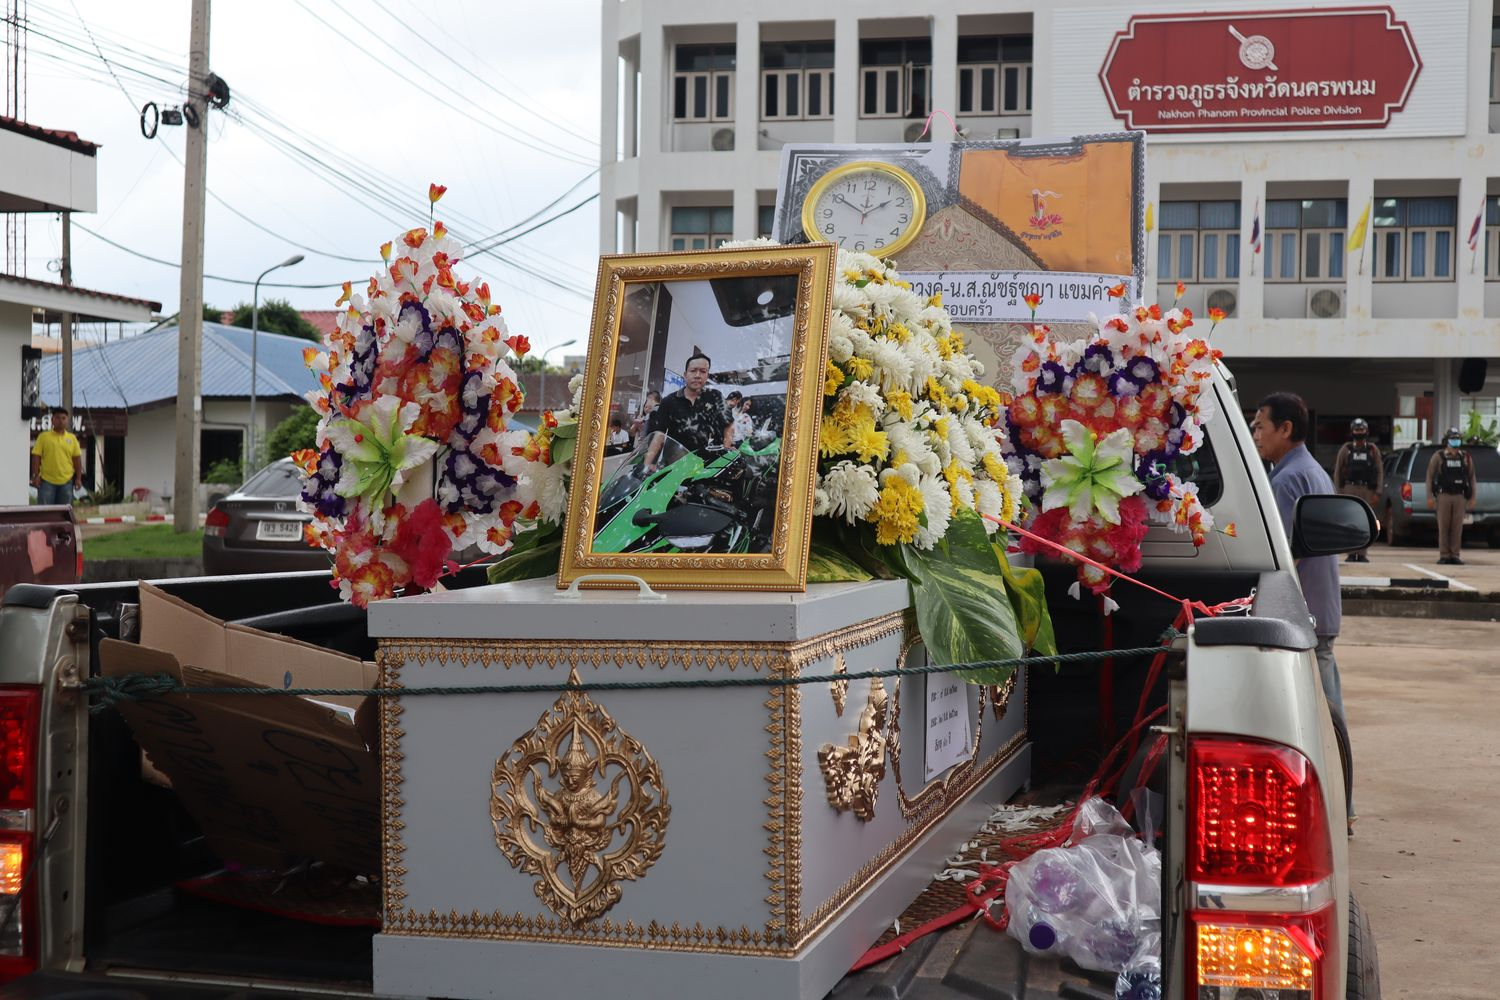 Relatives of Witthaya Sopawong, 40, an official at the Tambon Kan Lueang administrative organisation, brings a coffin holding his body to the Nakhon Phanom provincial police on Tuesday to demand an investigation into his death in custody. (Photo supplied by Pattanapong Piasrichai)